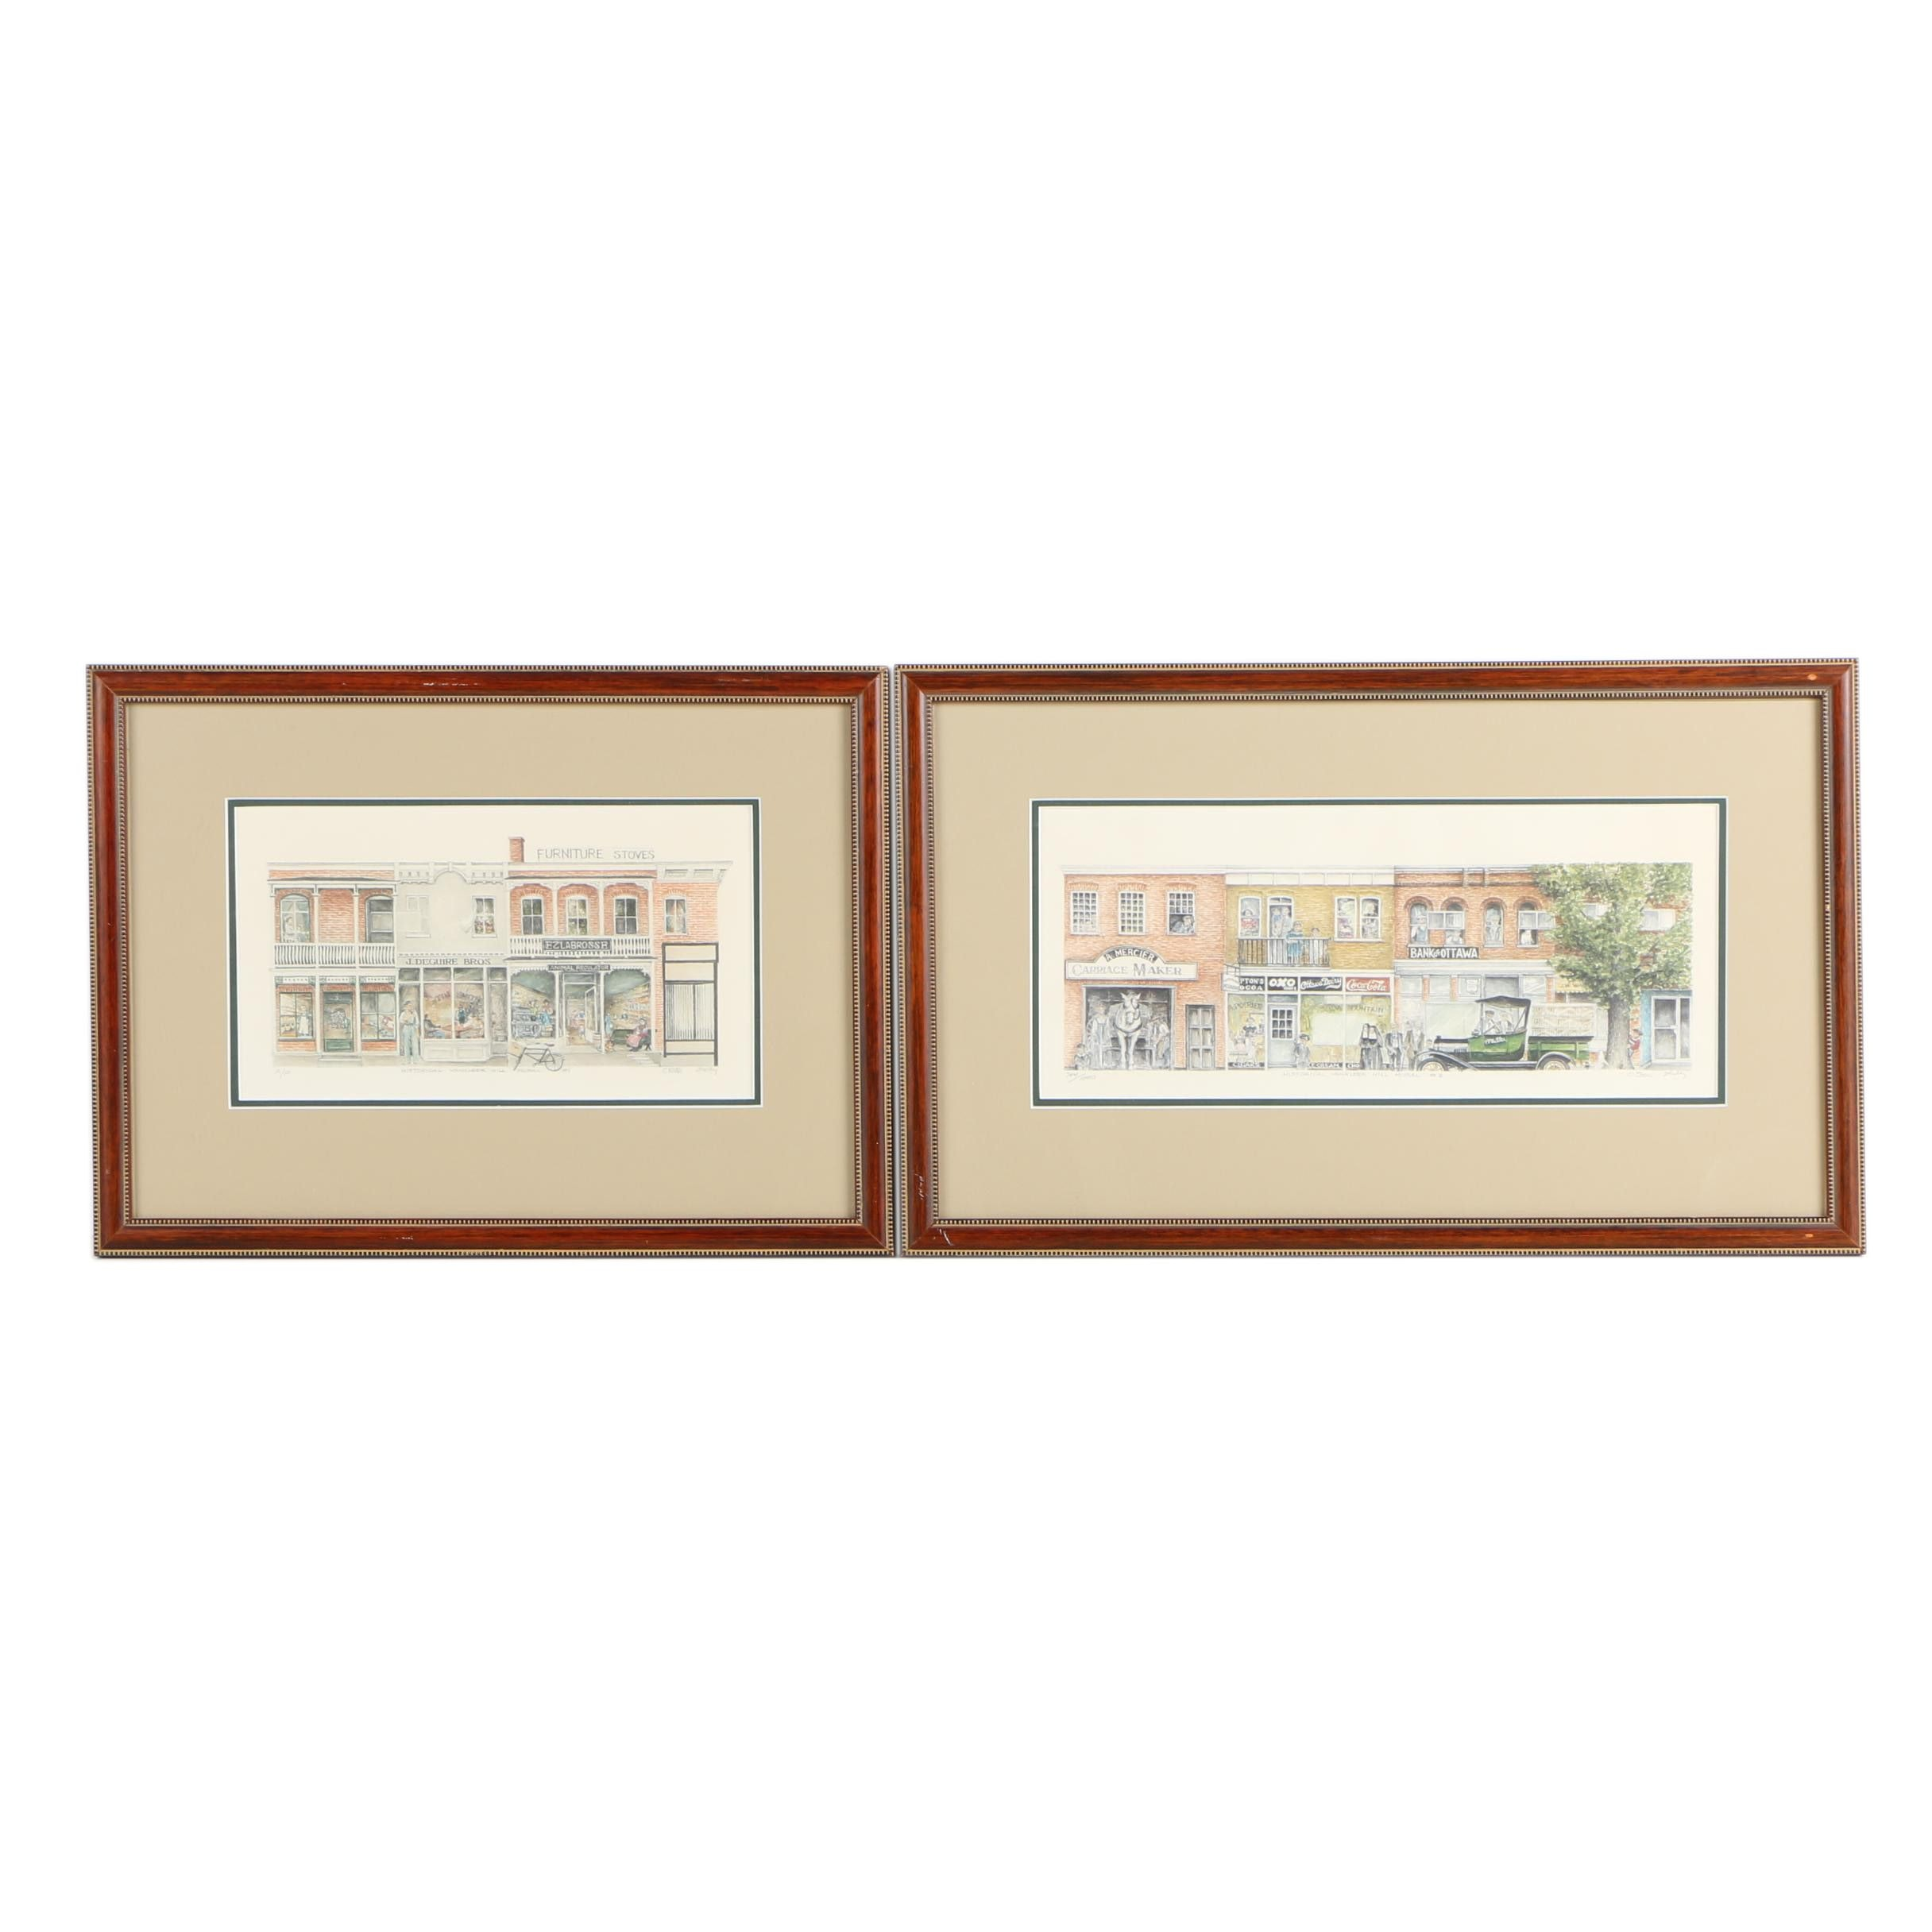 """Limited Edition Offset Lithographs """"Historical Vanleek Hill Mural #1 and #2"""""""